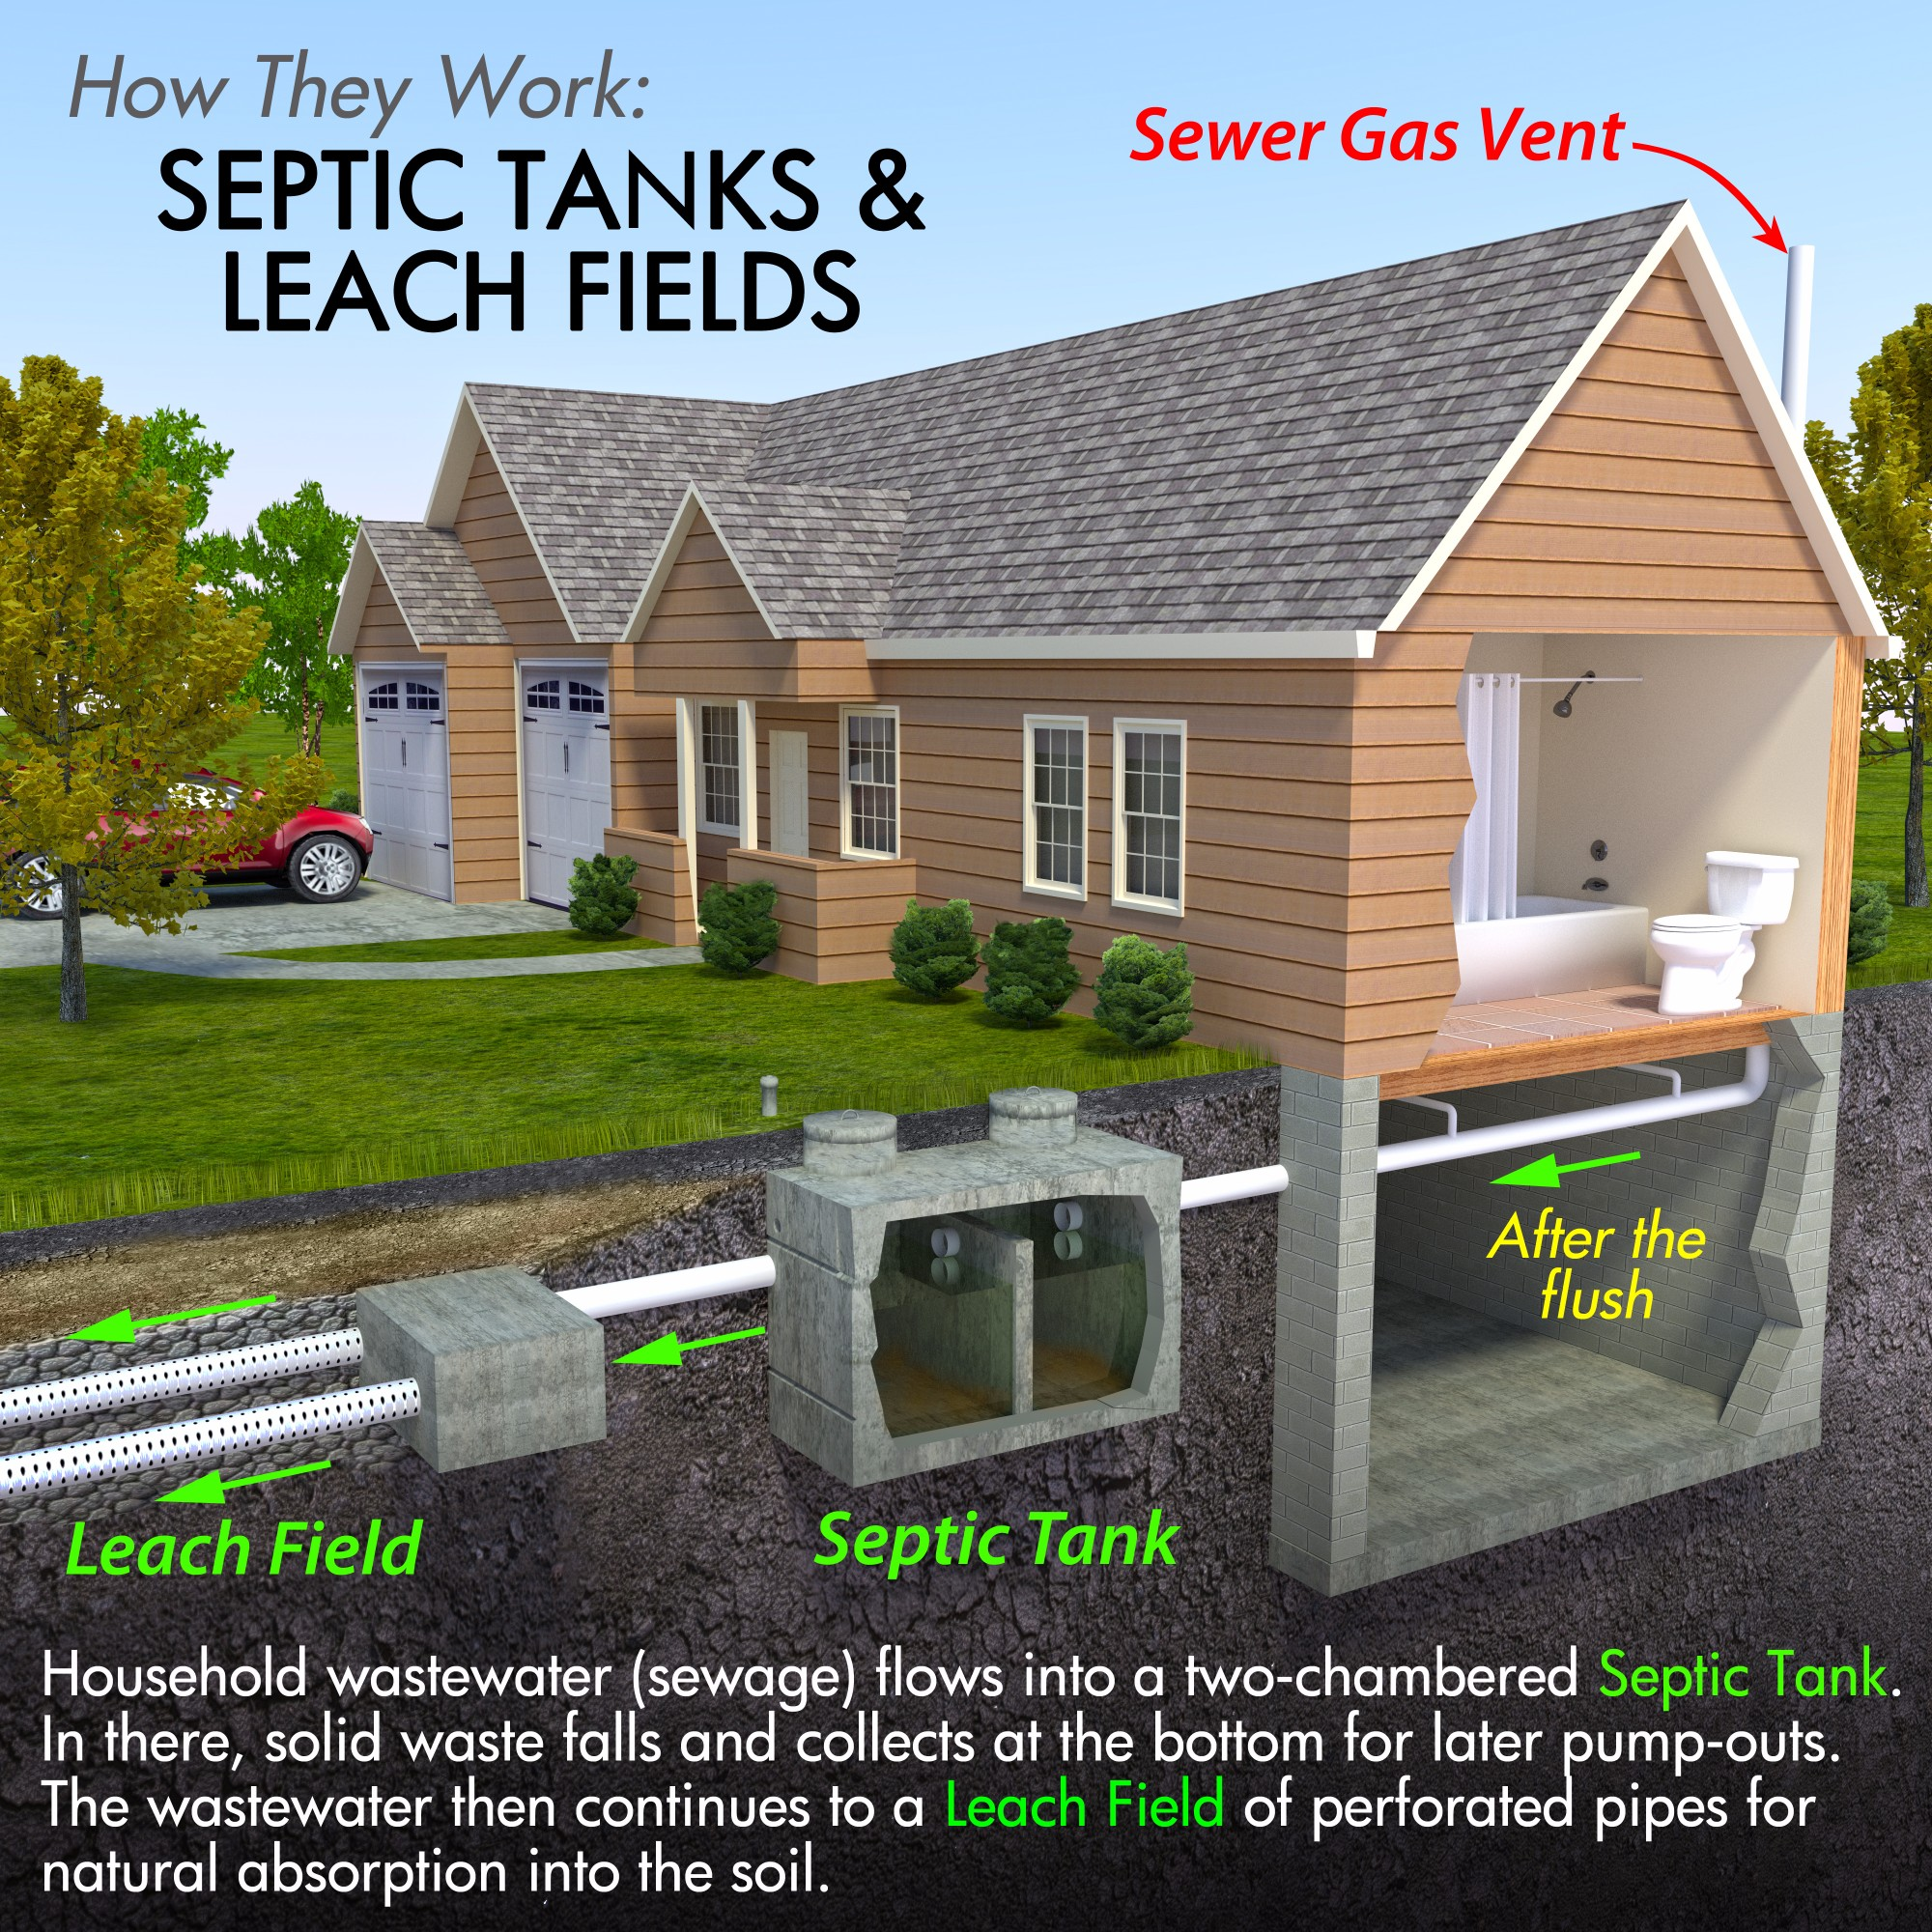 Bolton Septic - what is a septic tank